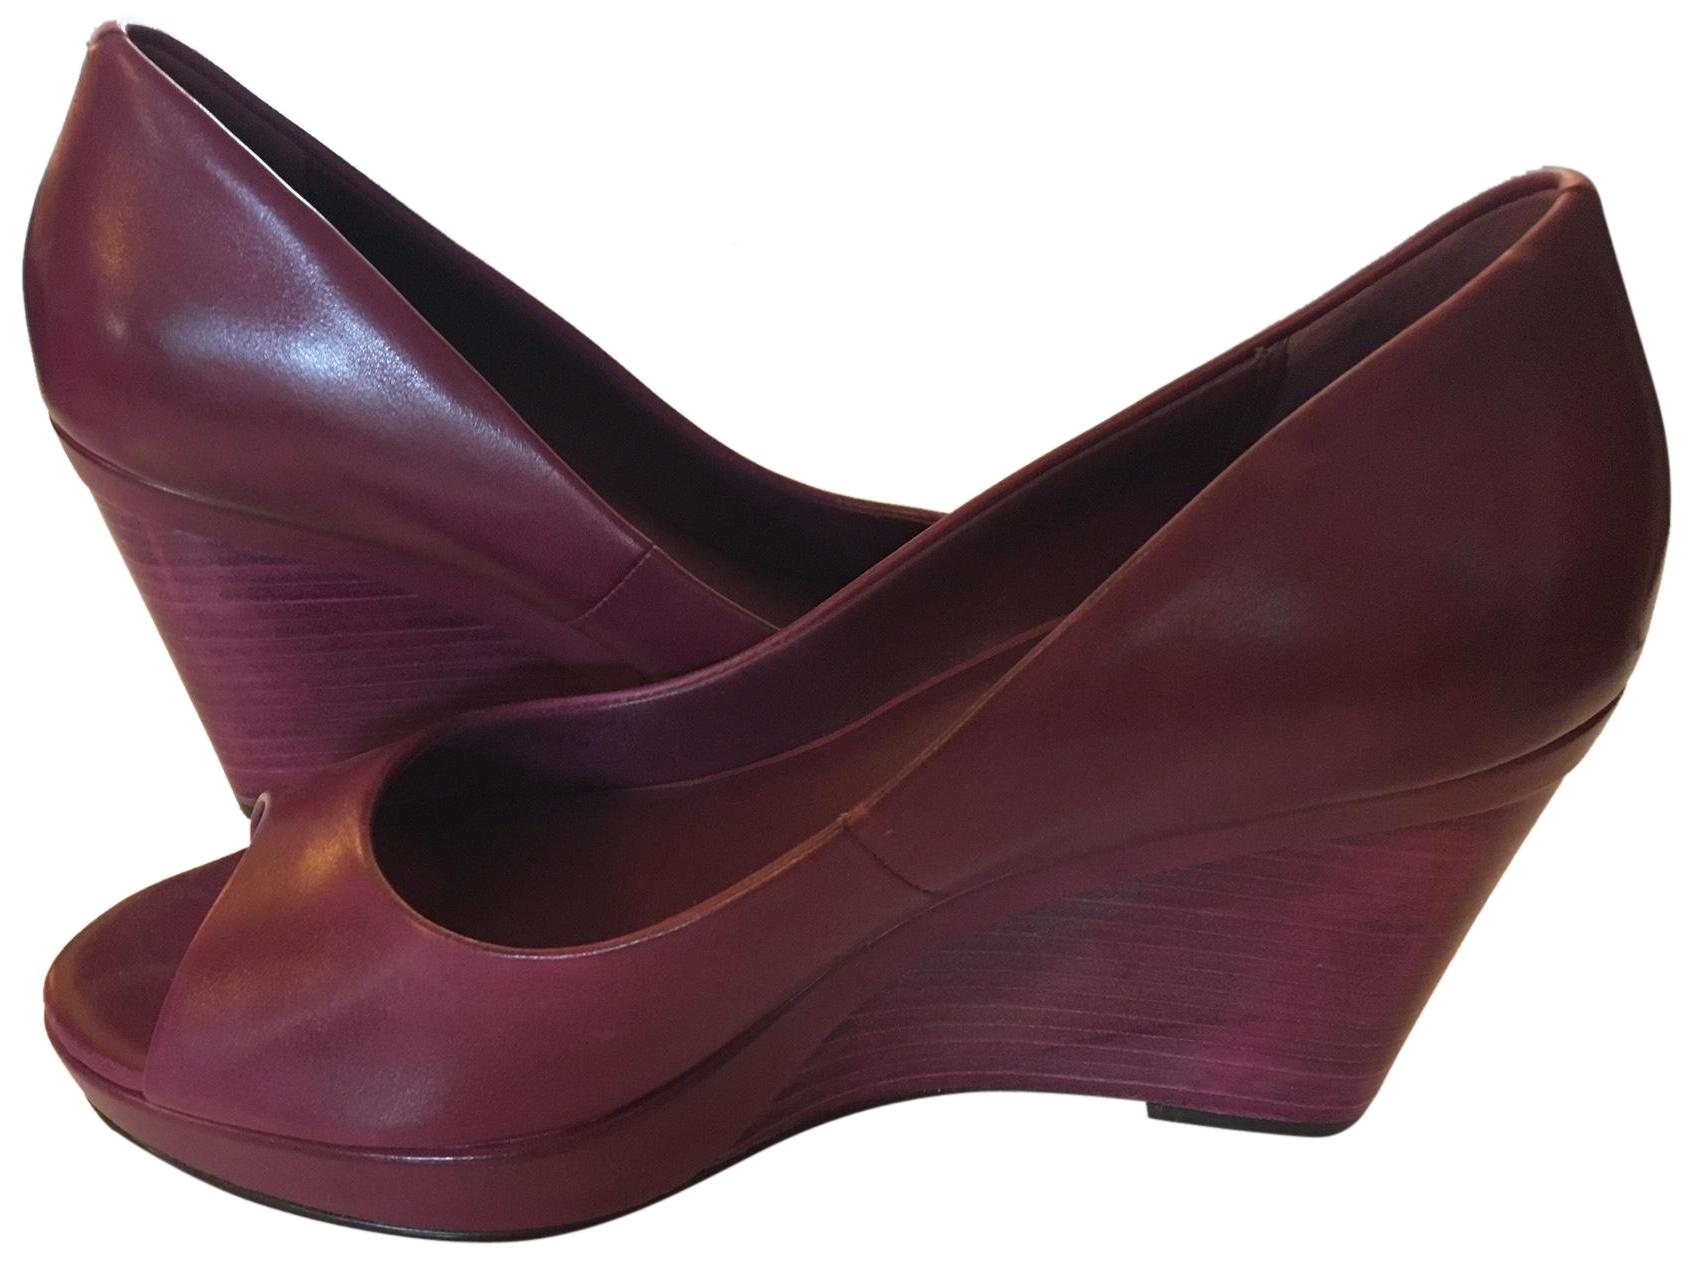 5a270a1f5 Cole Haan Magenta Shayna Leather Open Toe Pump Pump Pump Wedges Size US 8.5  Regular (M